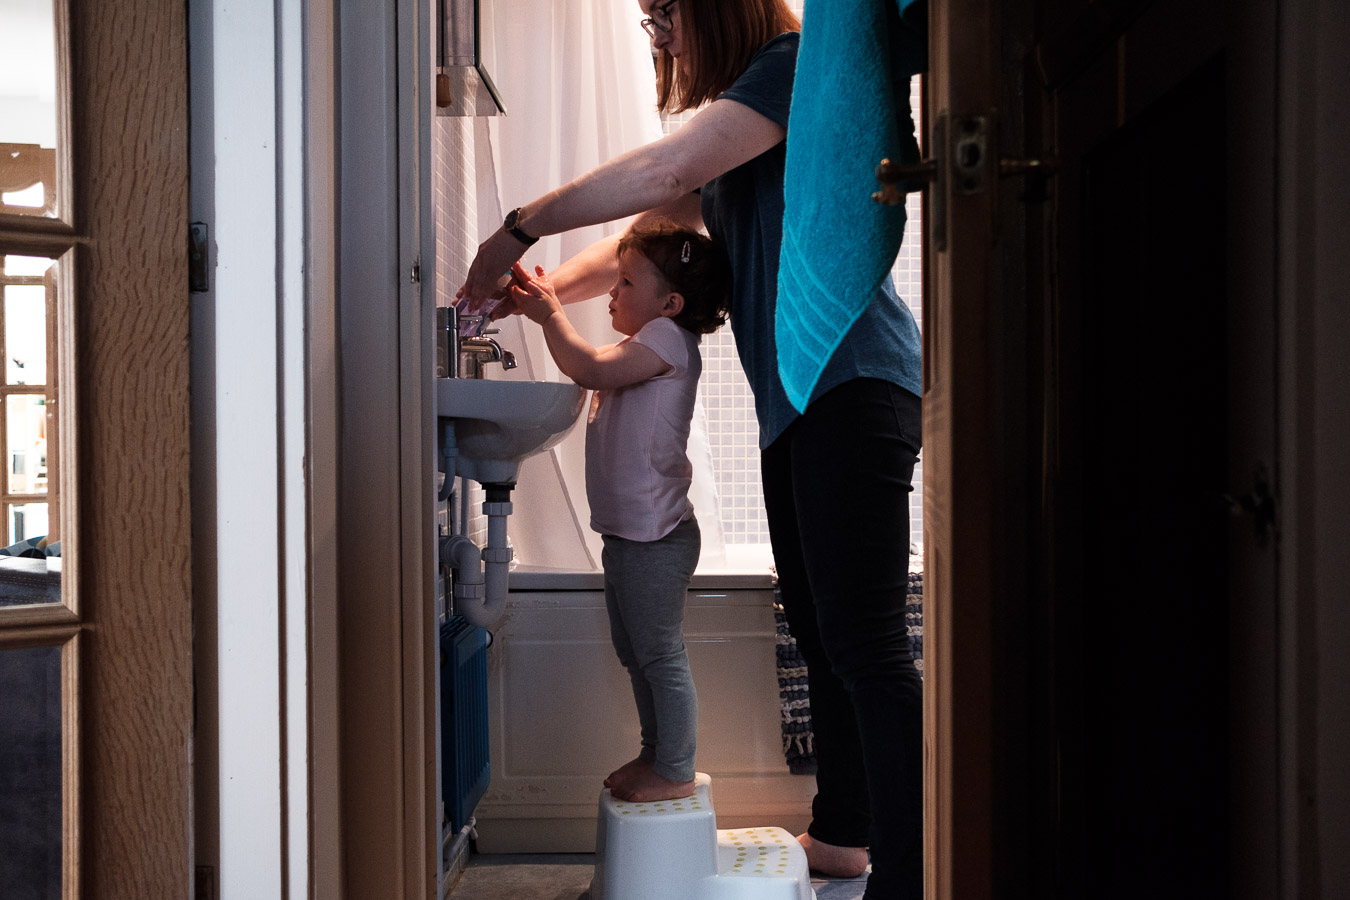 Mum helps daughter wash hands in bathroom during documentary photo session.